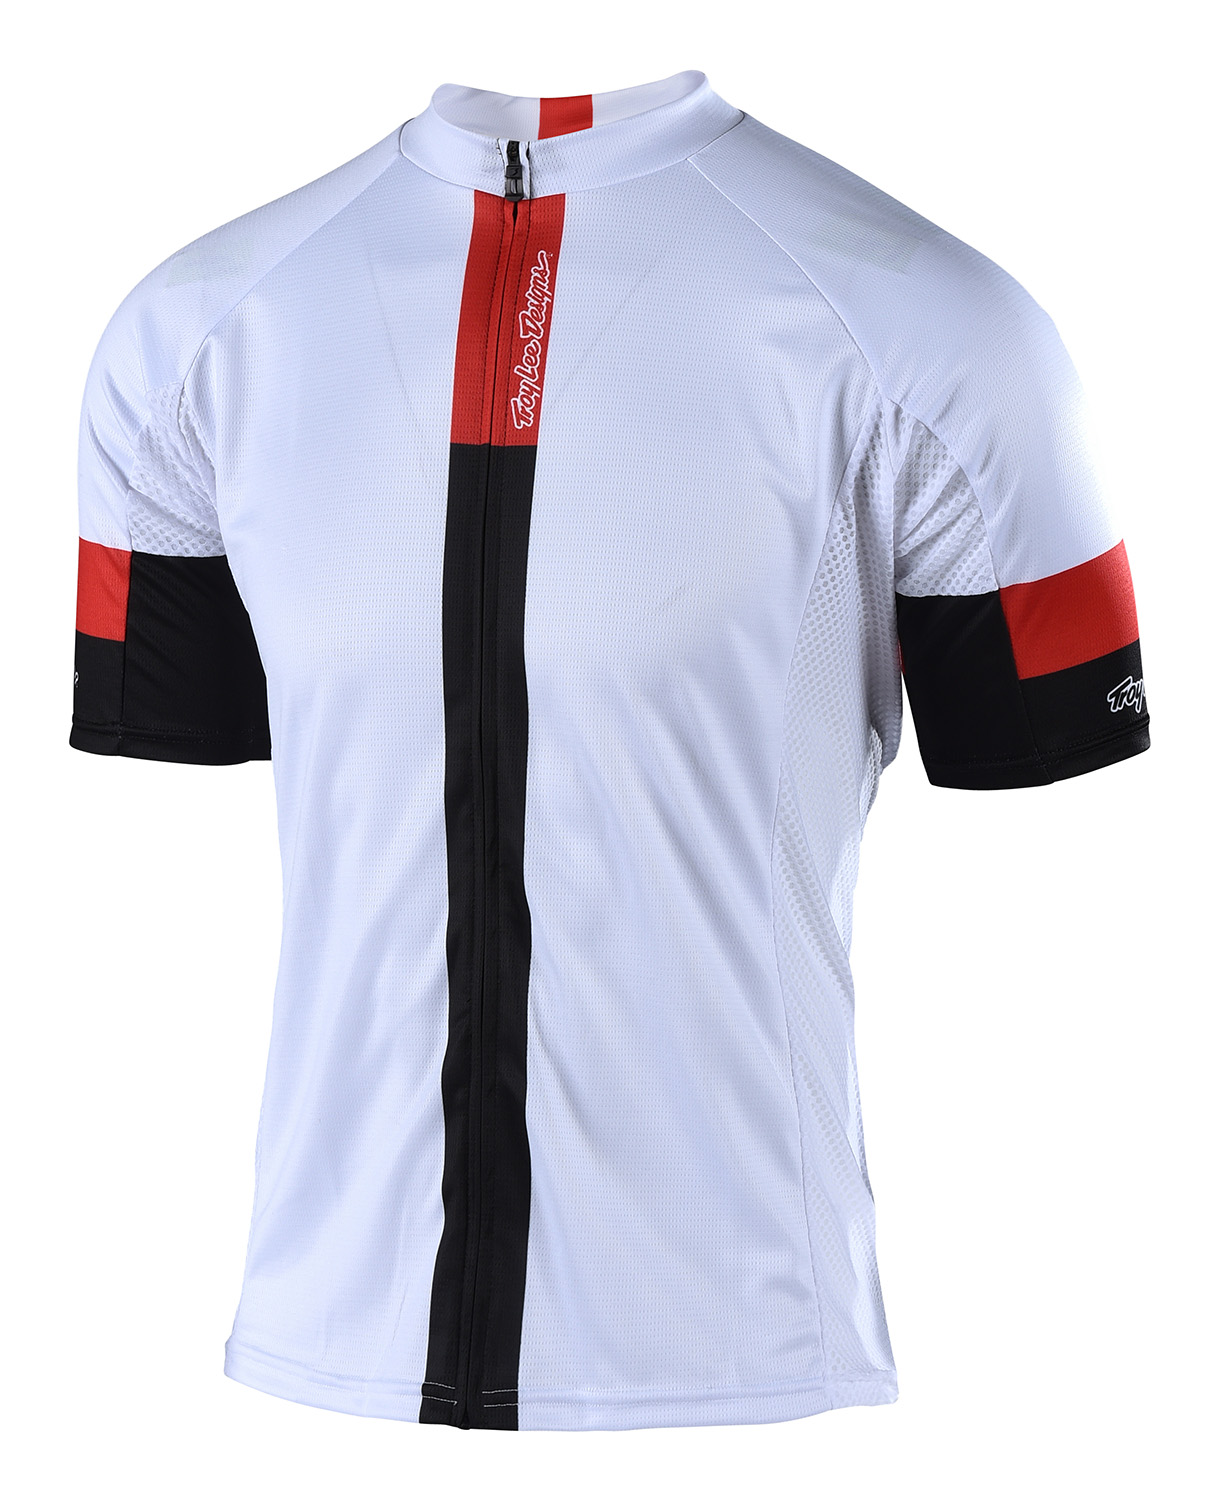 802ce7fb7 Troy Lee Designs Ace 2.0 Jersey White £62.99